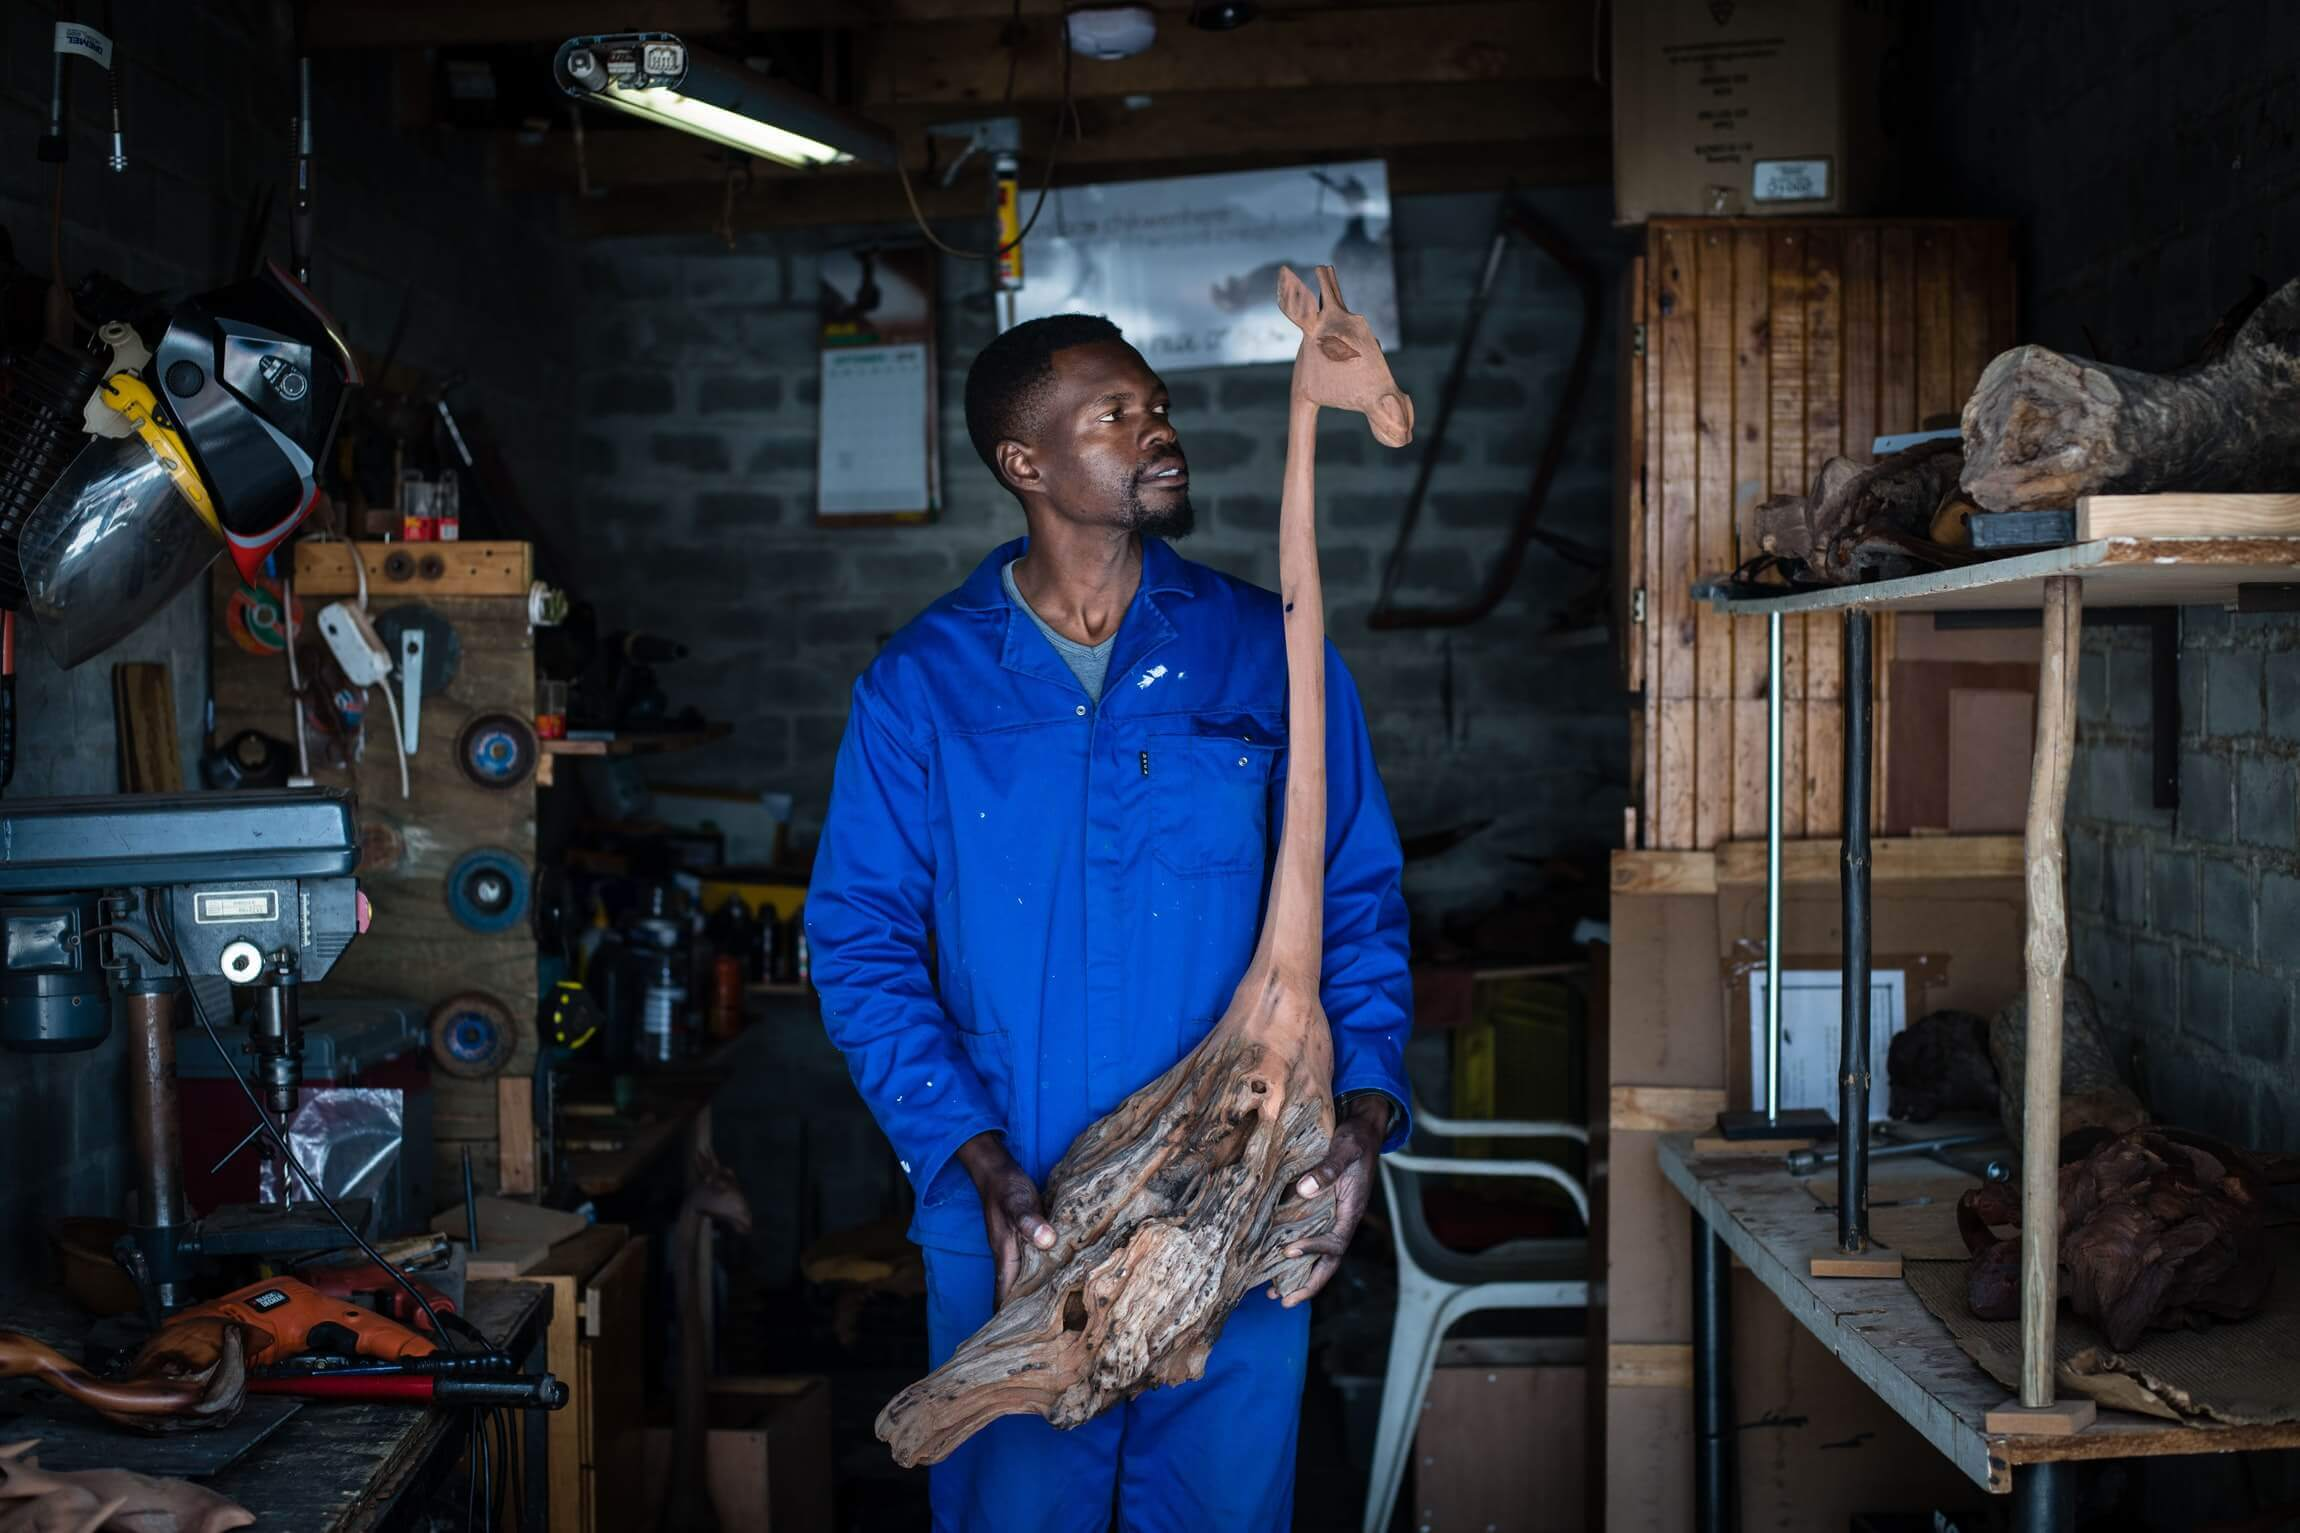 Boniface holding up a partially completed giraffe sculpture.